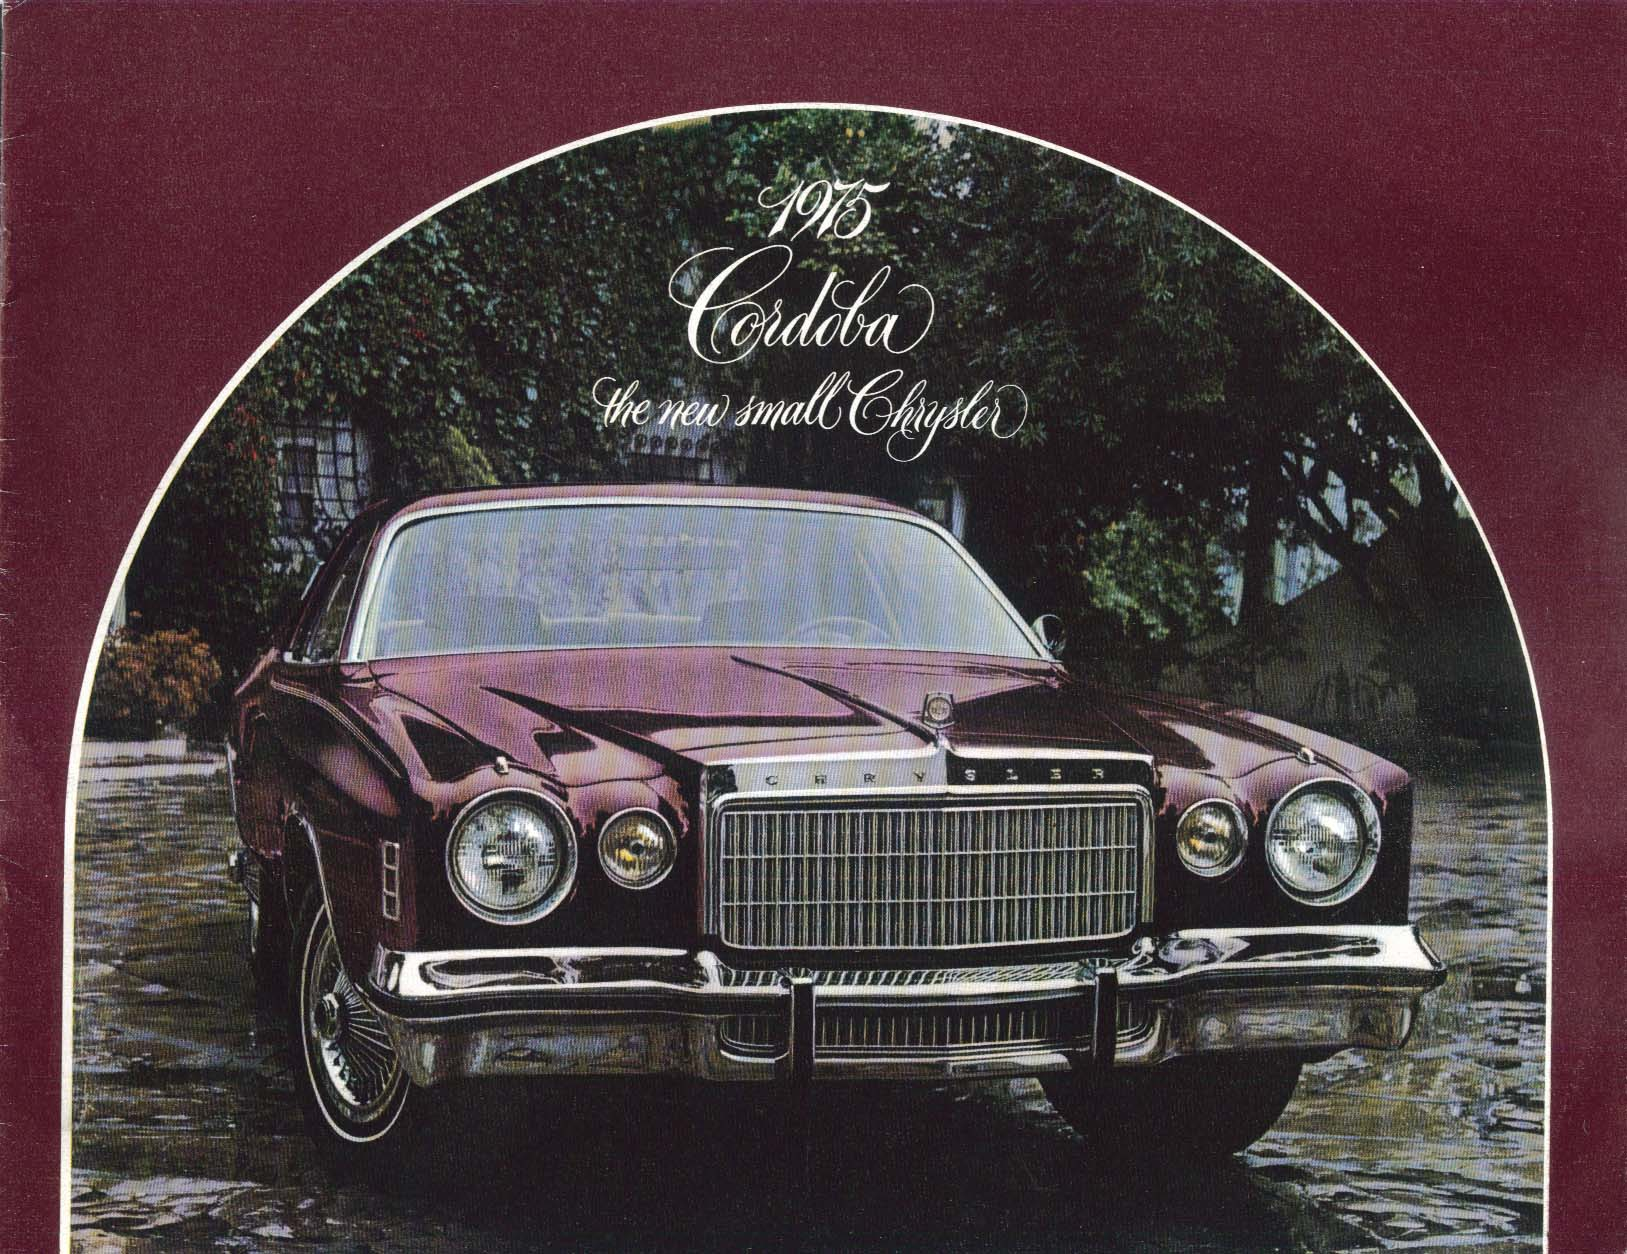 Image for 1975 Chrysler Cordoba sales brochure